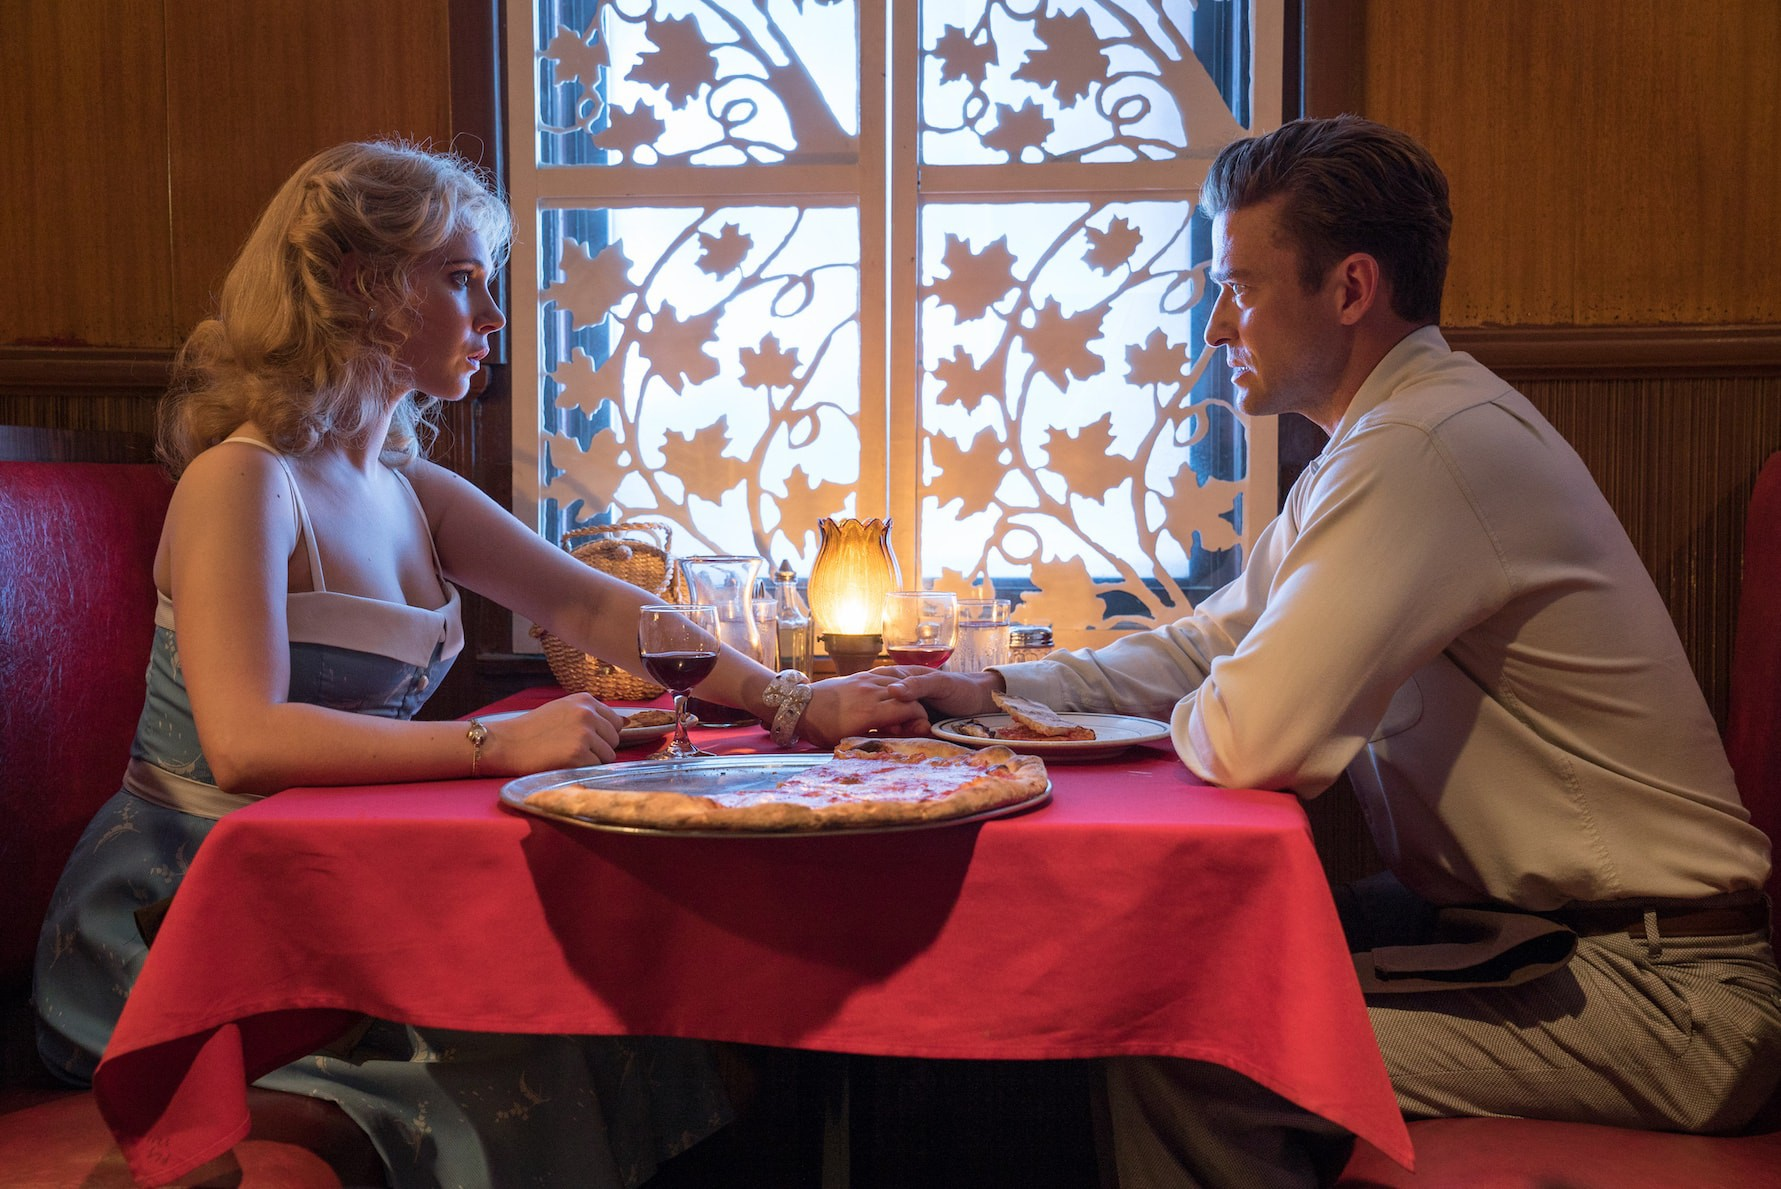 Juno Temple and Justin Timberlake in 'Wonder Wheel' © Warner Bros/Amazon Studios